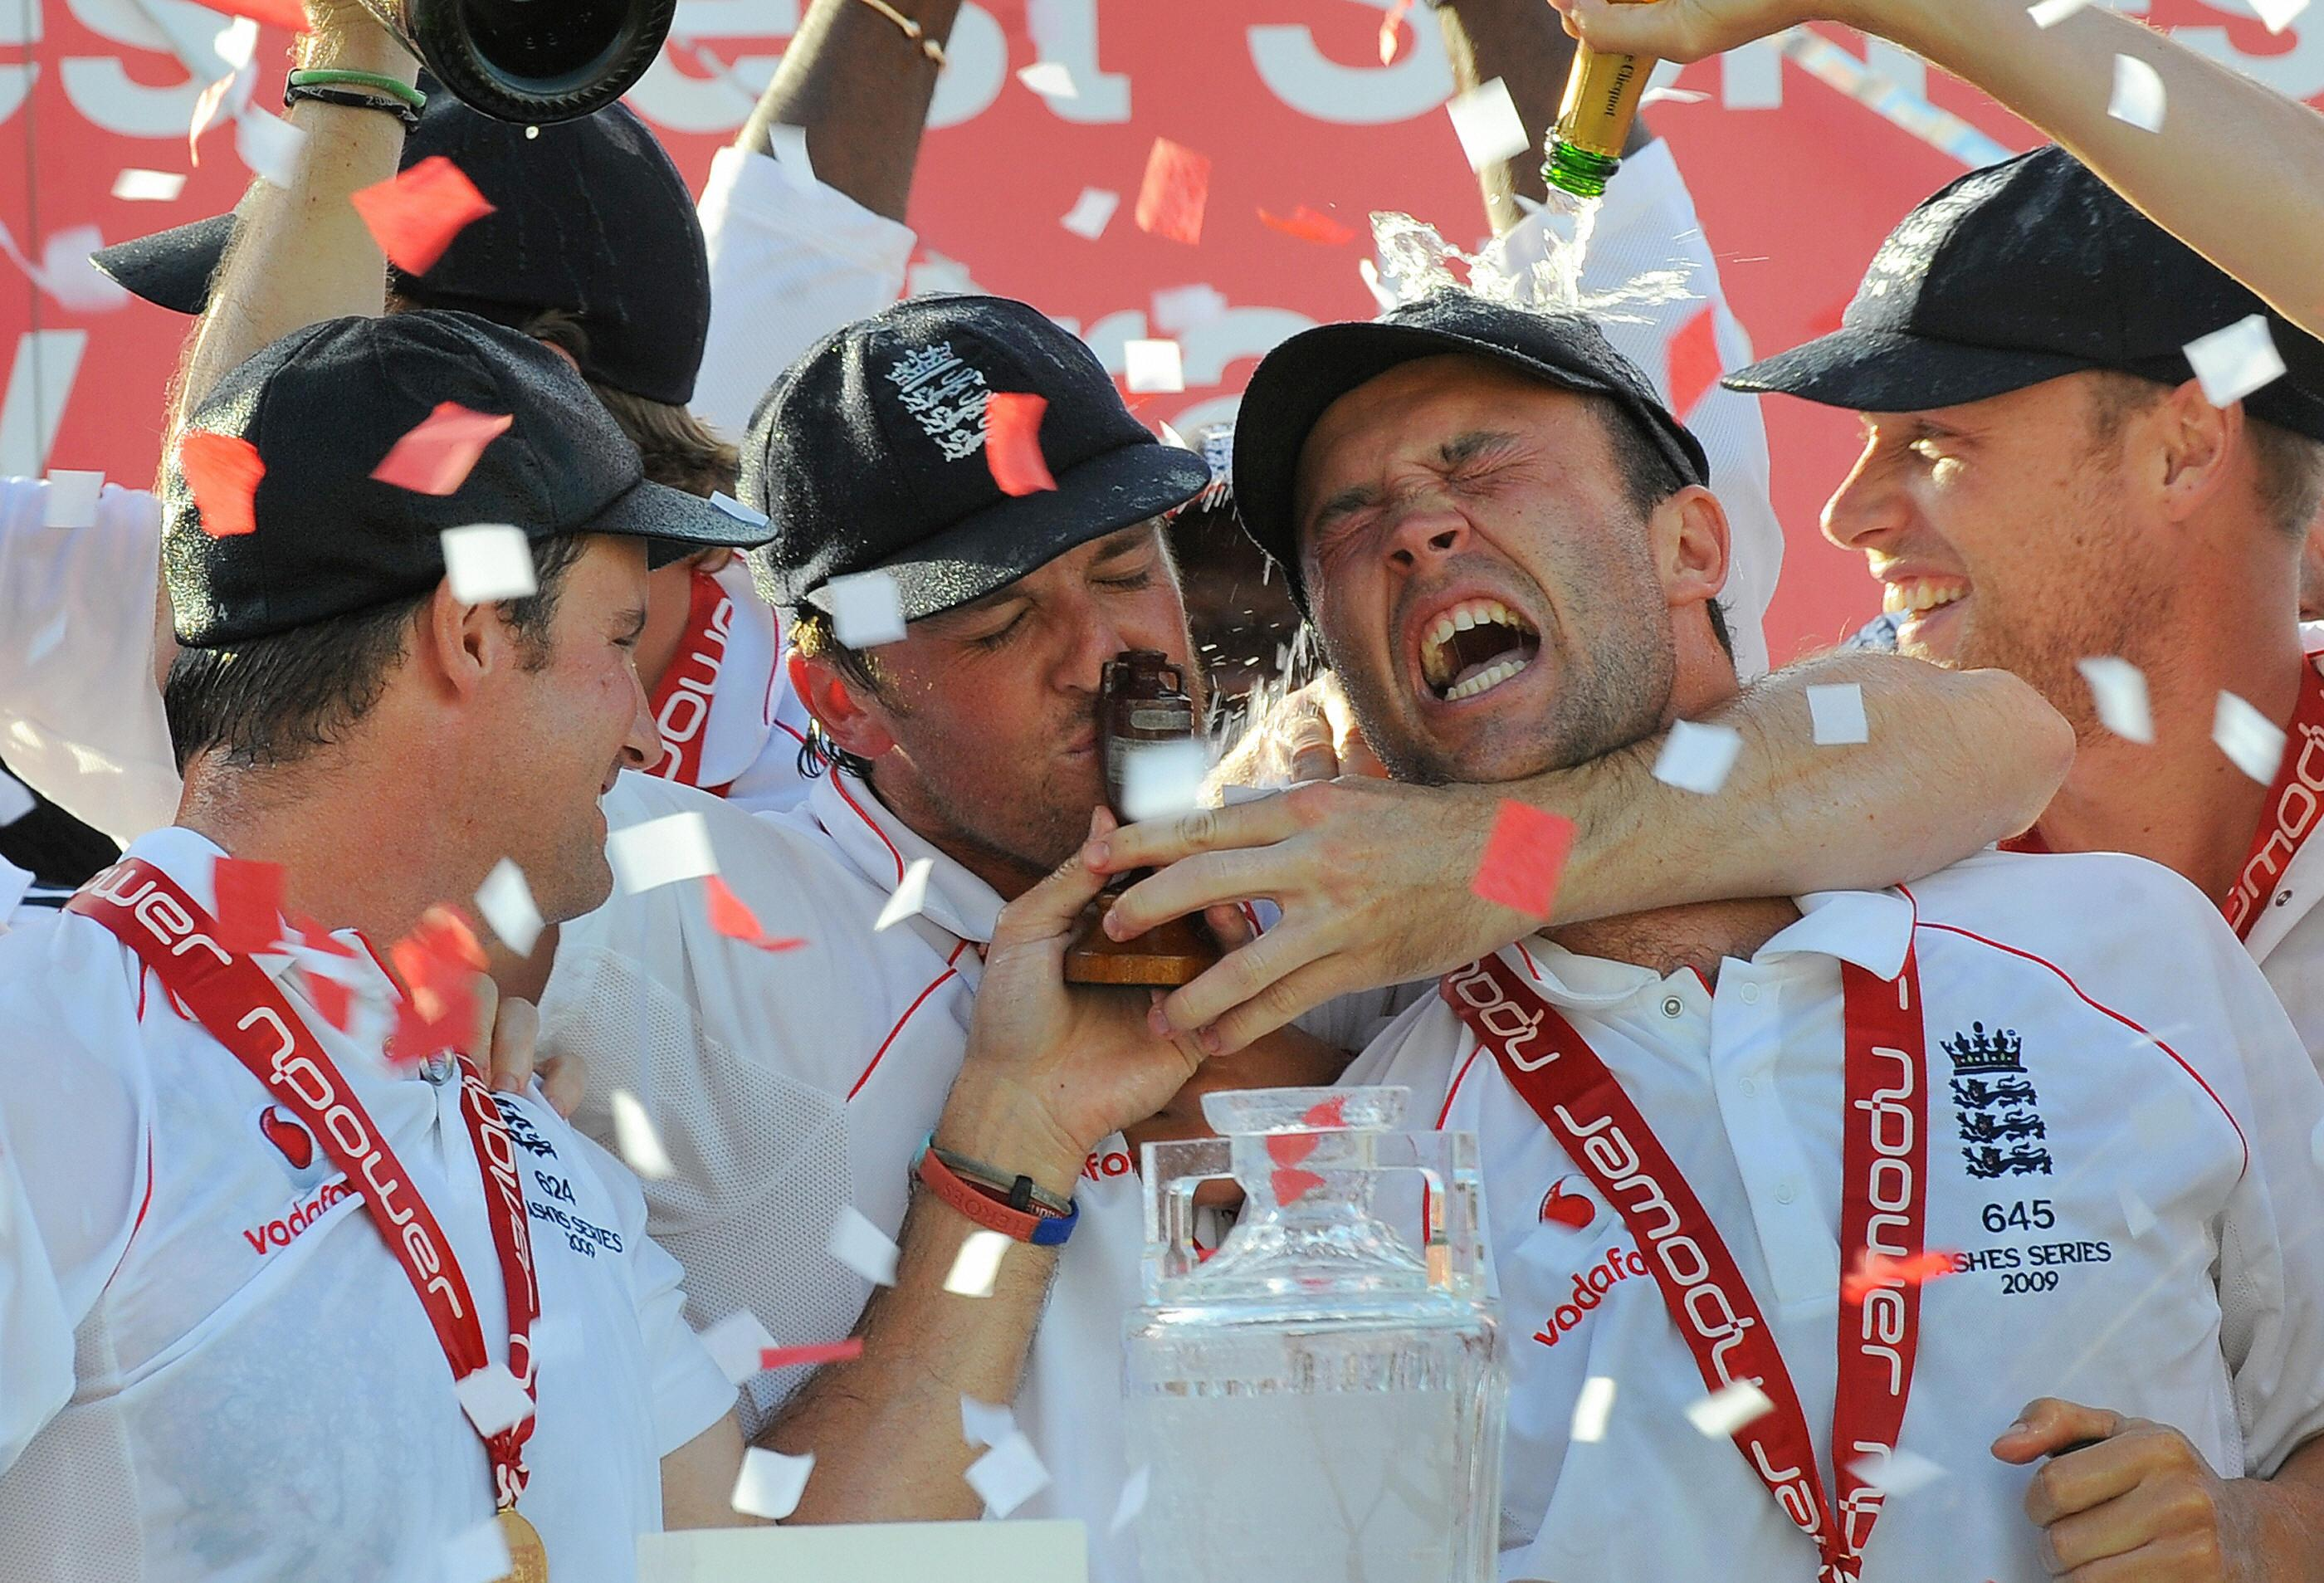 Jonathan Trott had plenty of highs to go with the lows in his career